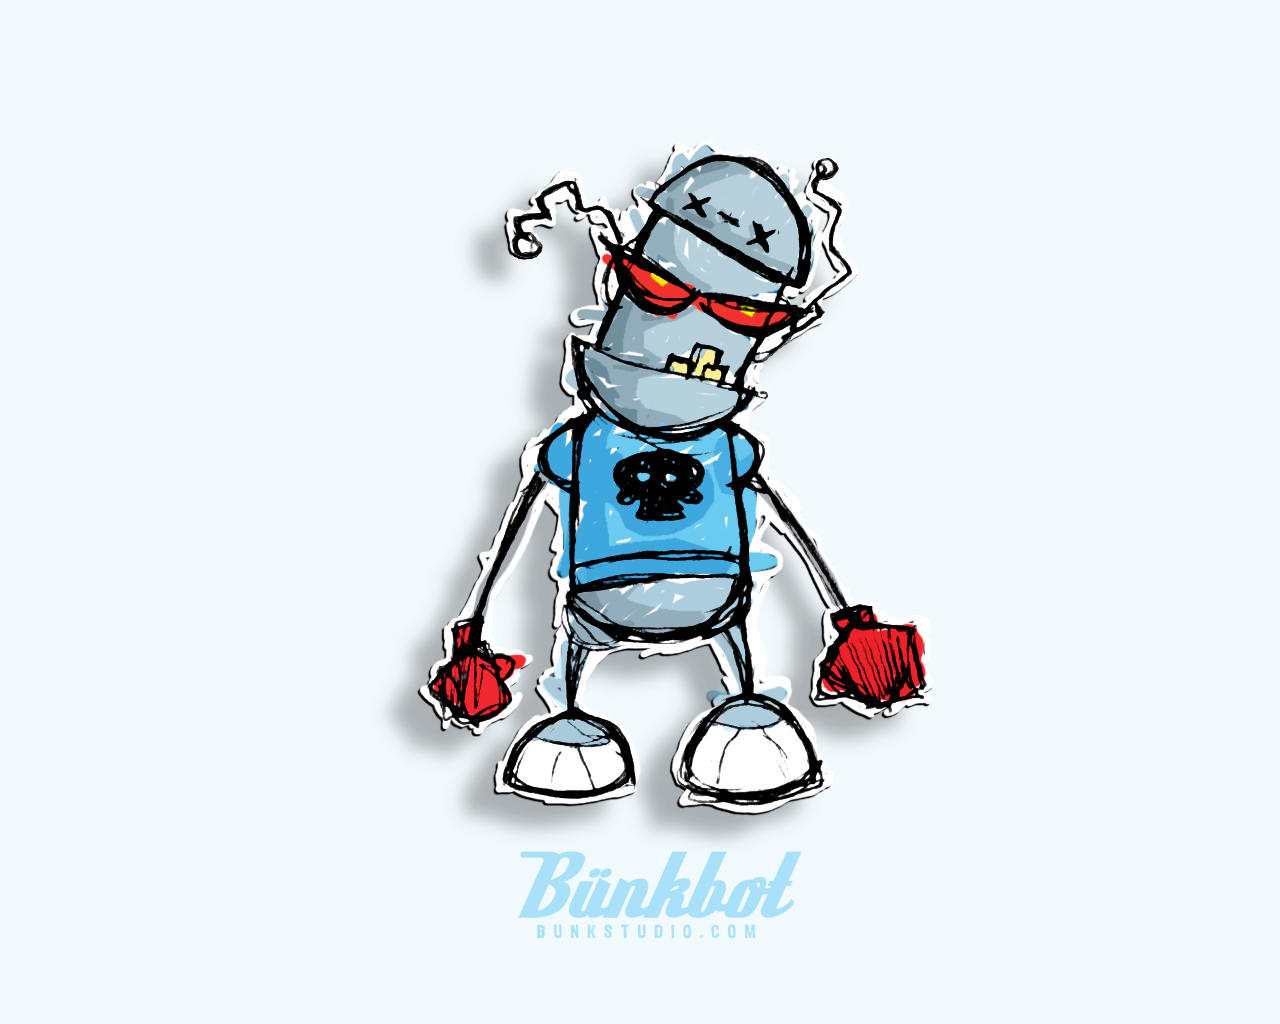 Bunkbot by bunkdesigns